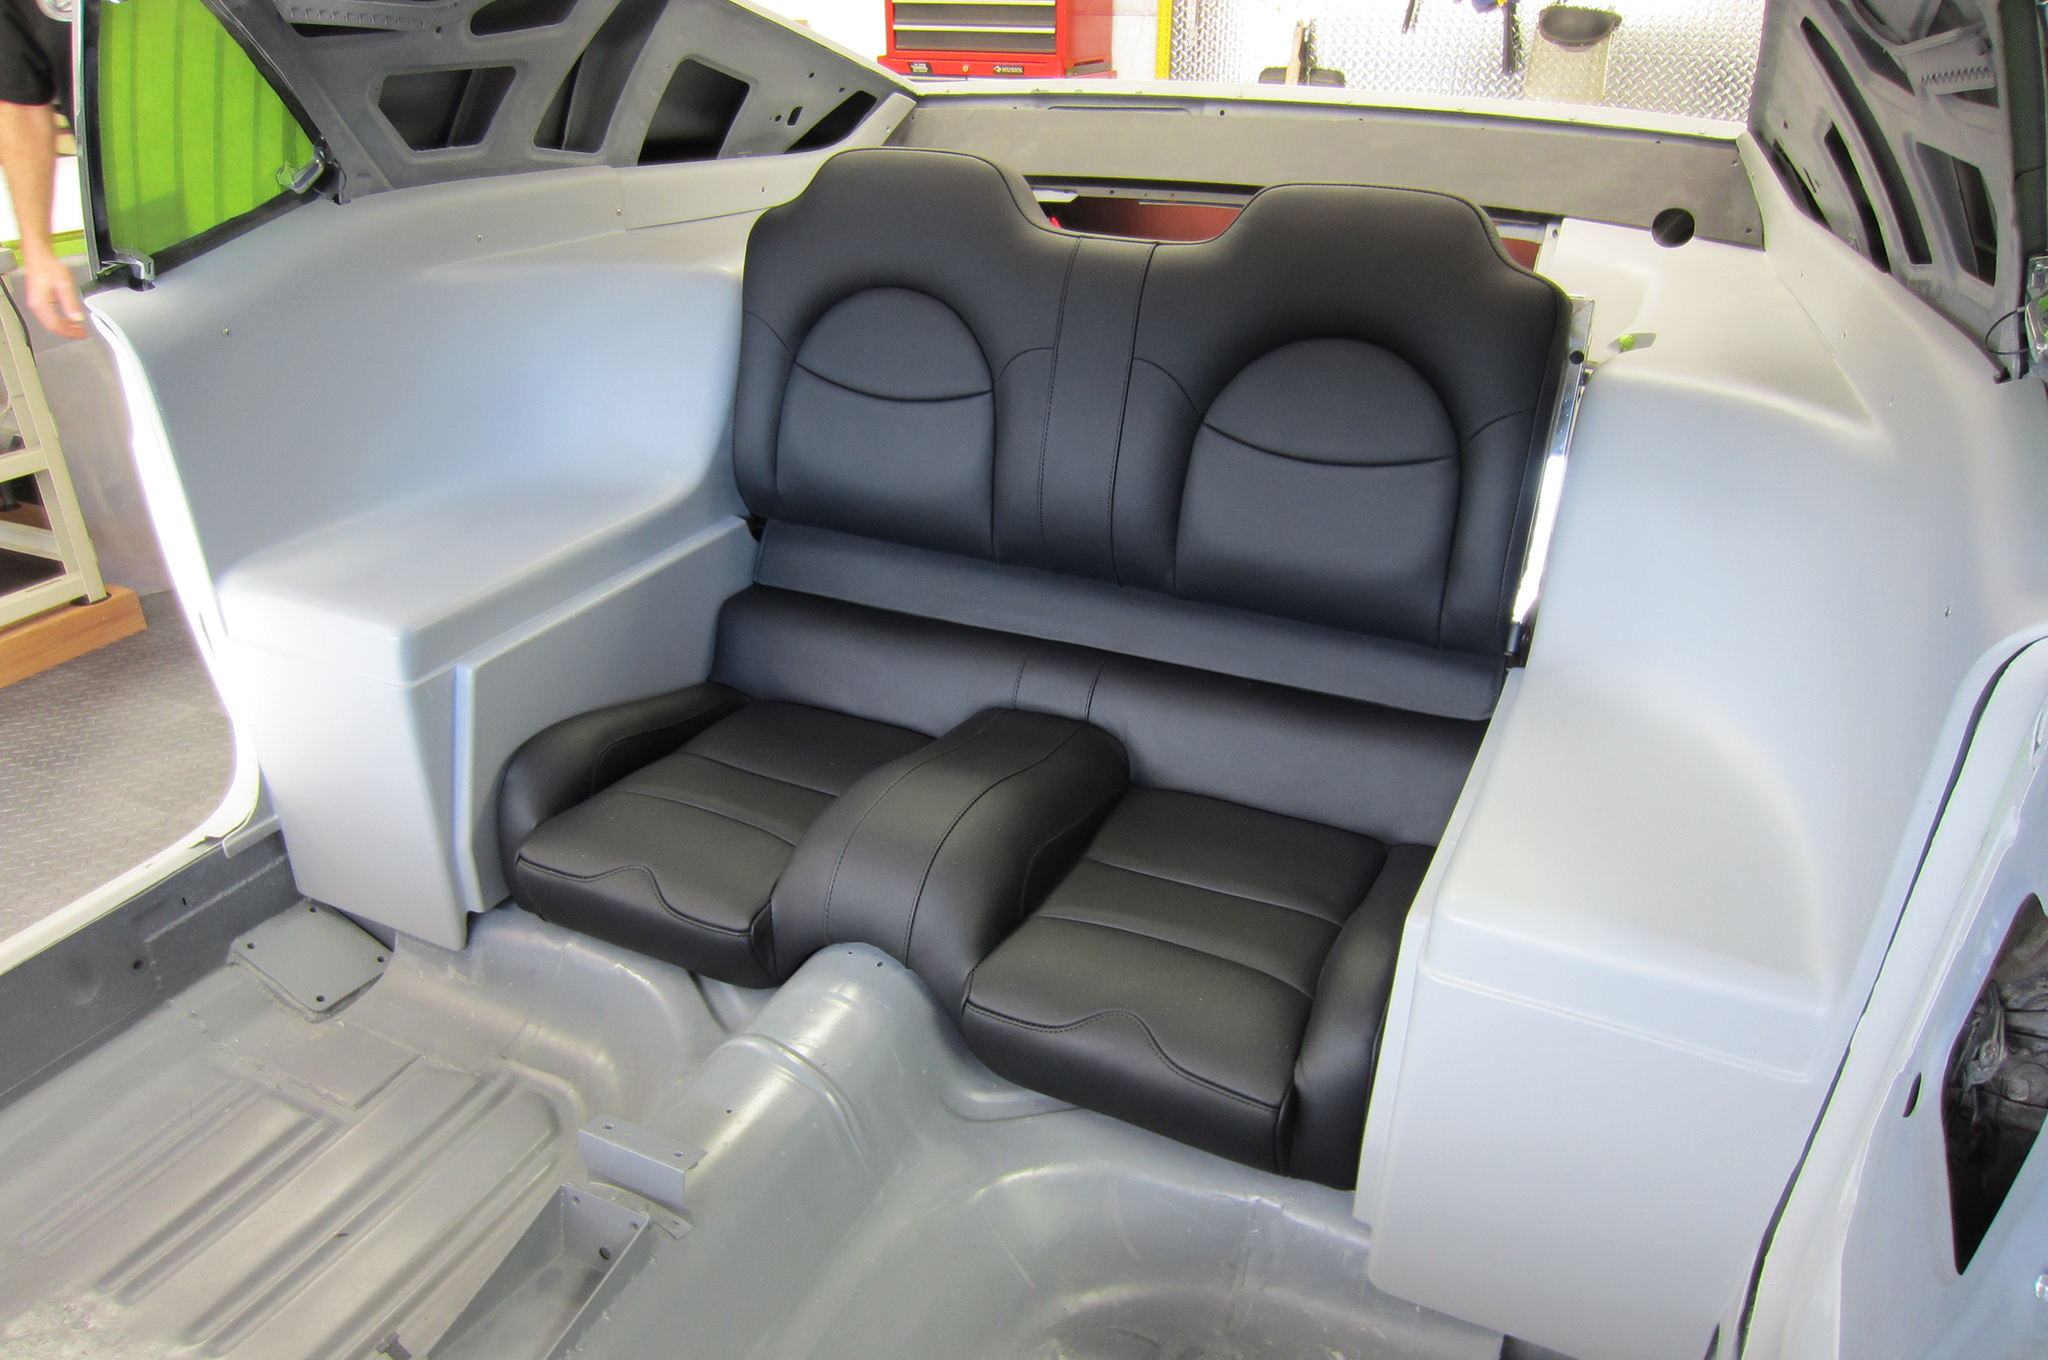 Enjoyable Building Custom Ford Mustang Seats From Scratch In 39 Steps Ibusinesslaw Wood Chair Design Ideas Ibusinesslaworg